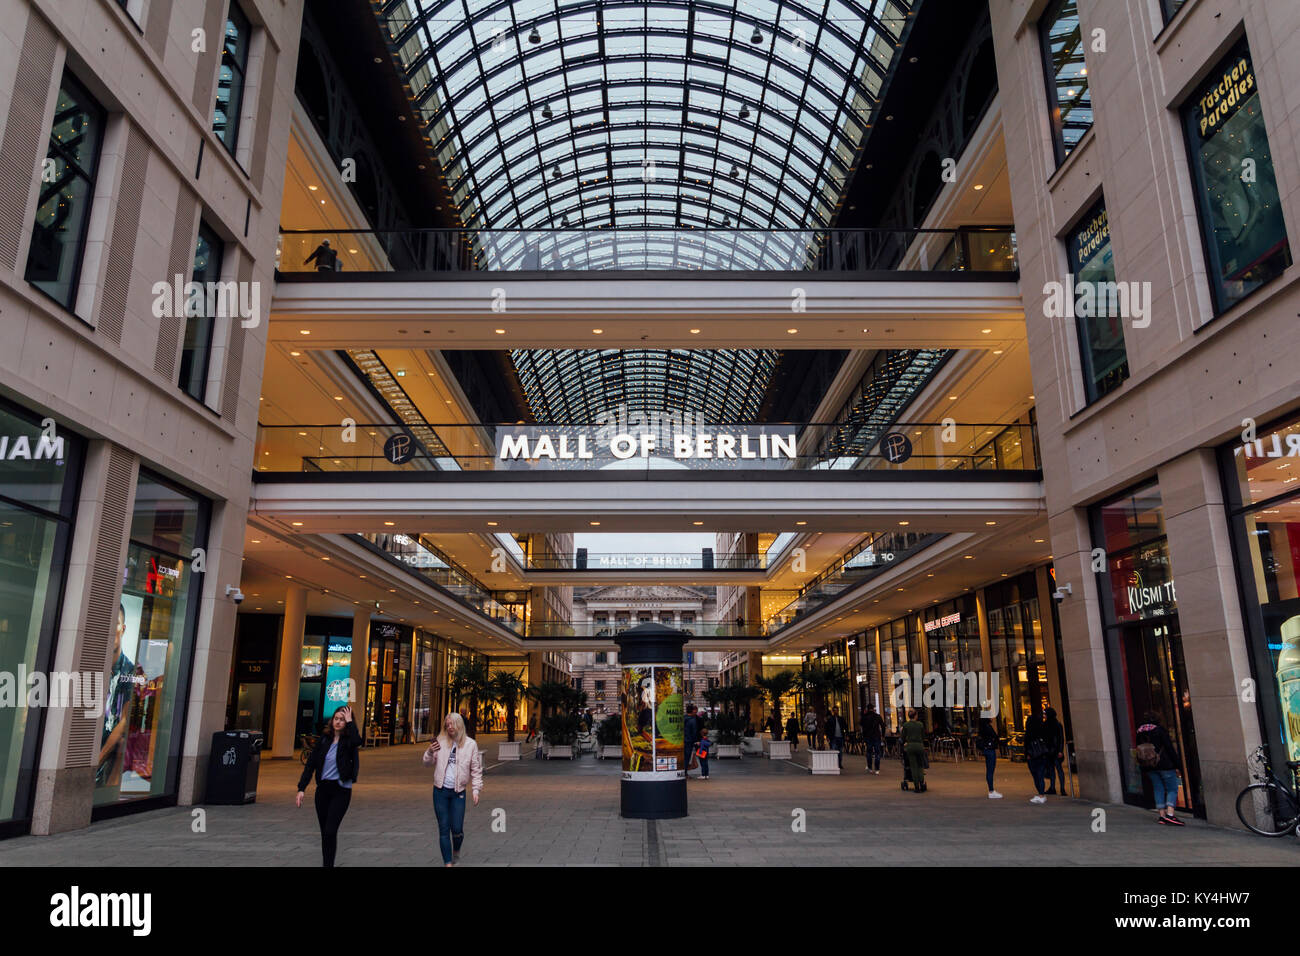 The Mall of Berlin shopping centre at Leipziger Platz